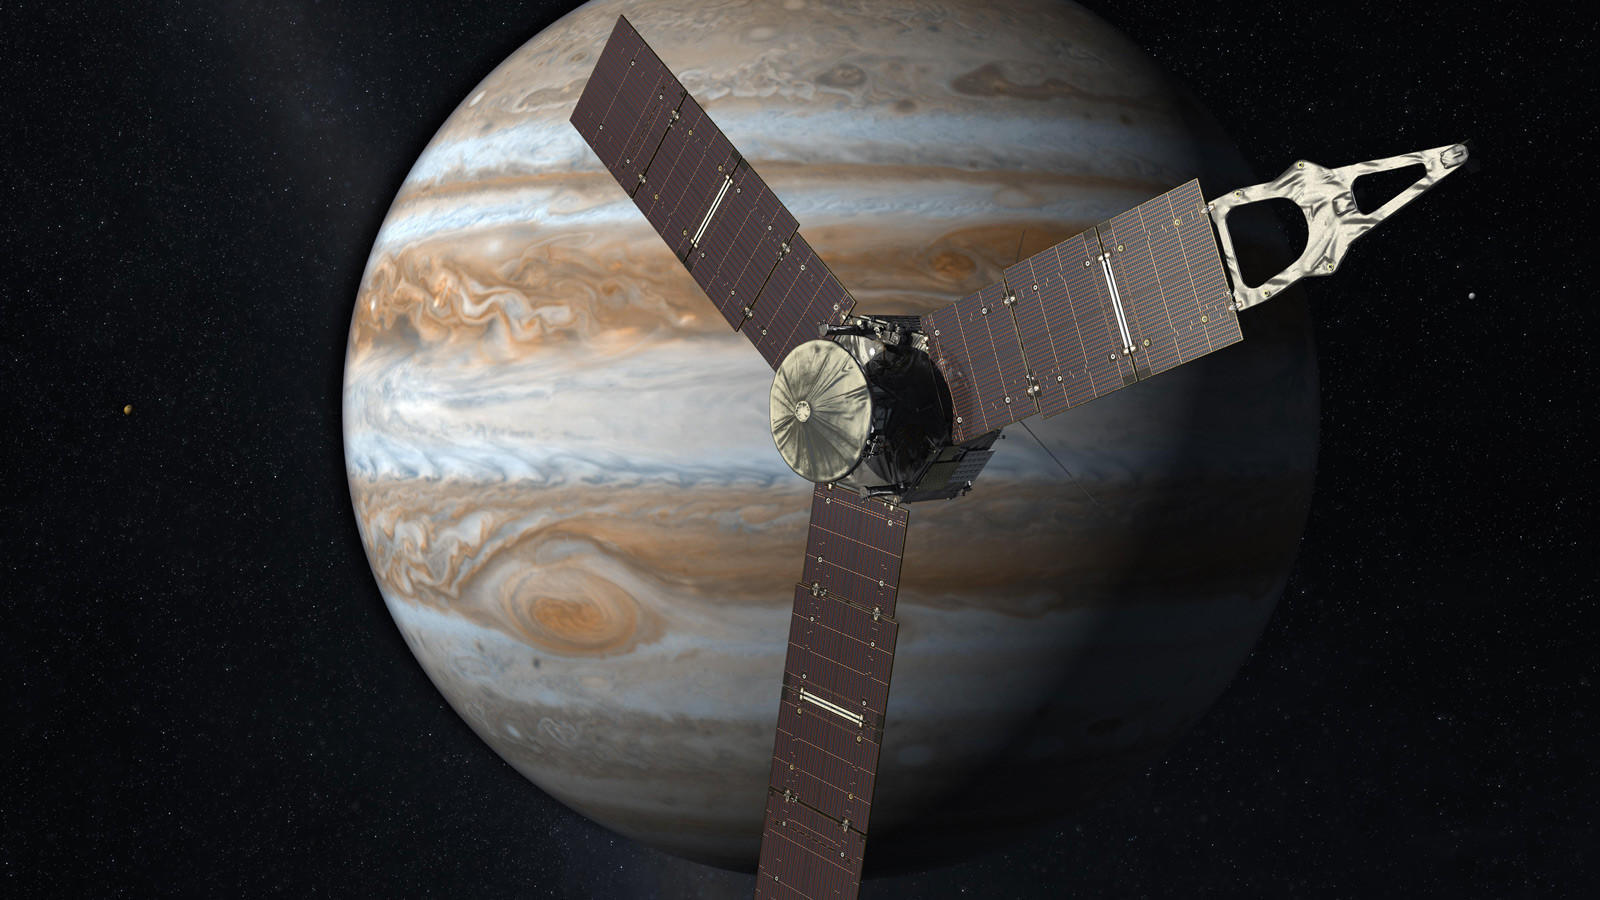 As it closes in on Jupiter, NASA's Juno spacecraft faces peril